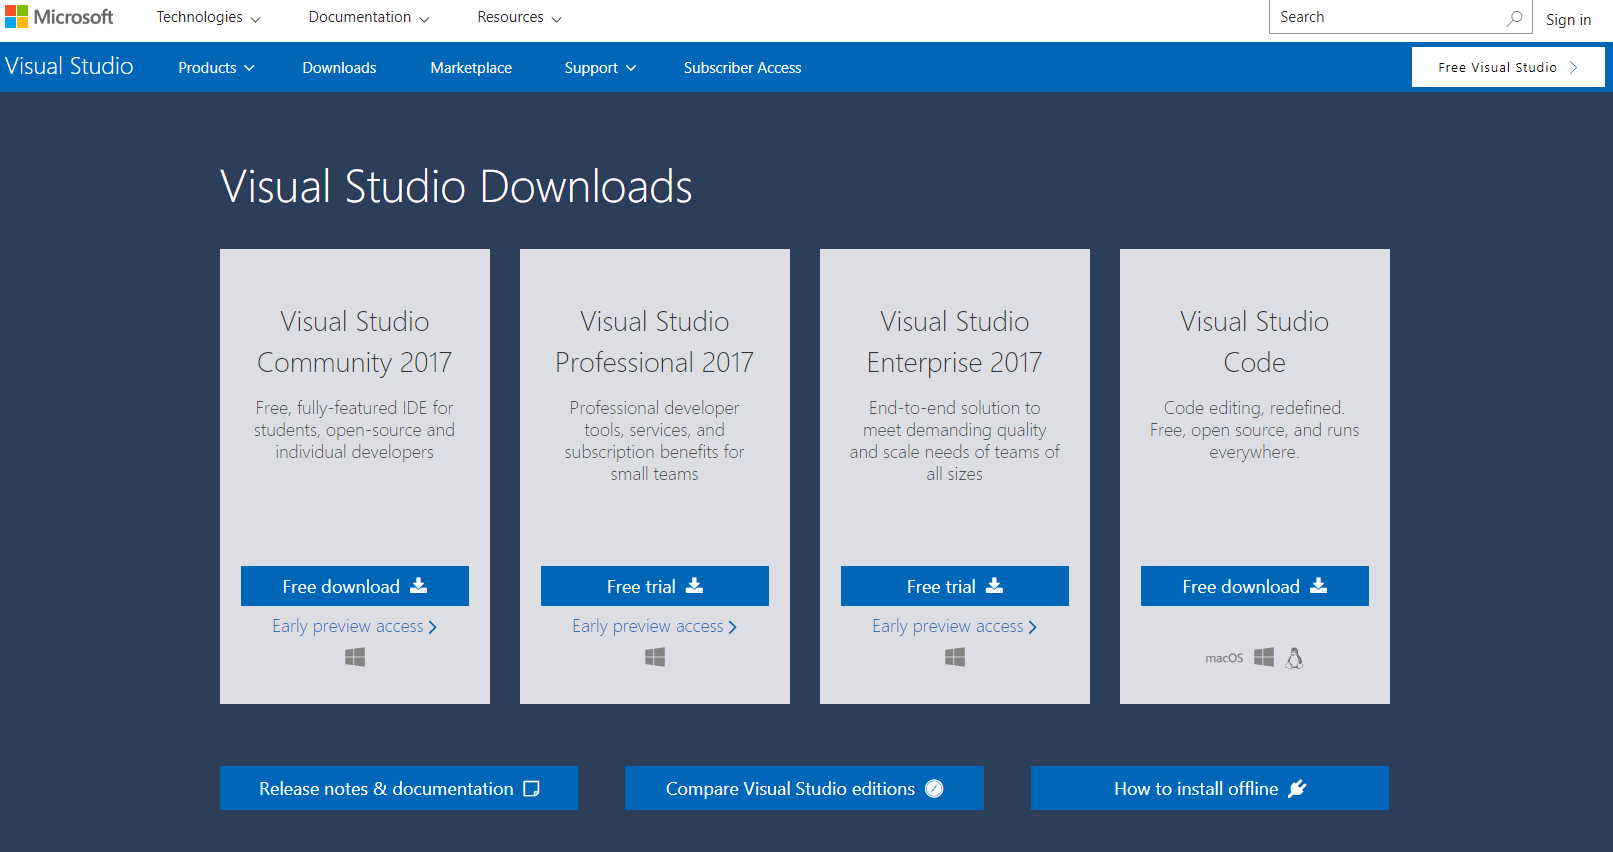 Locating and downloading the Visual Studio Community edition